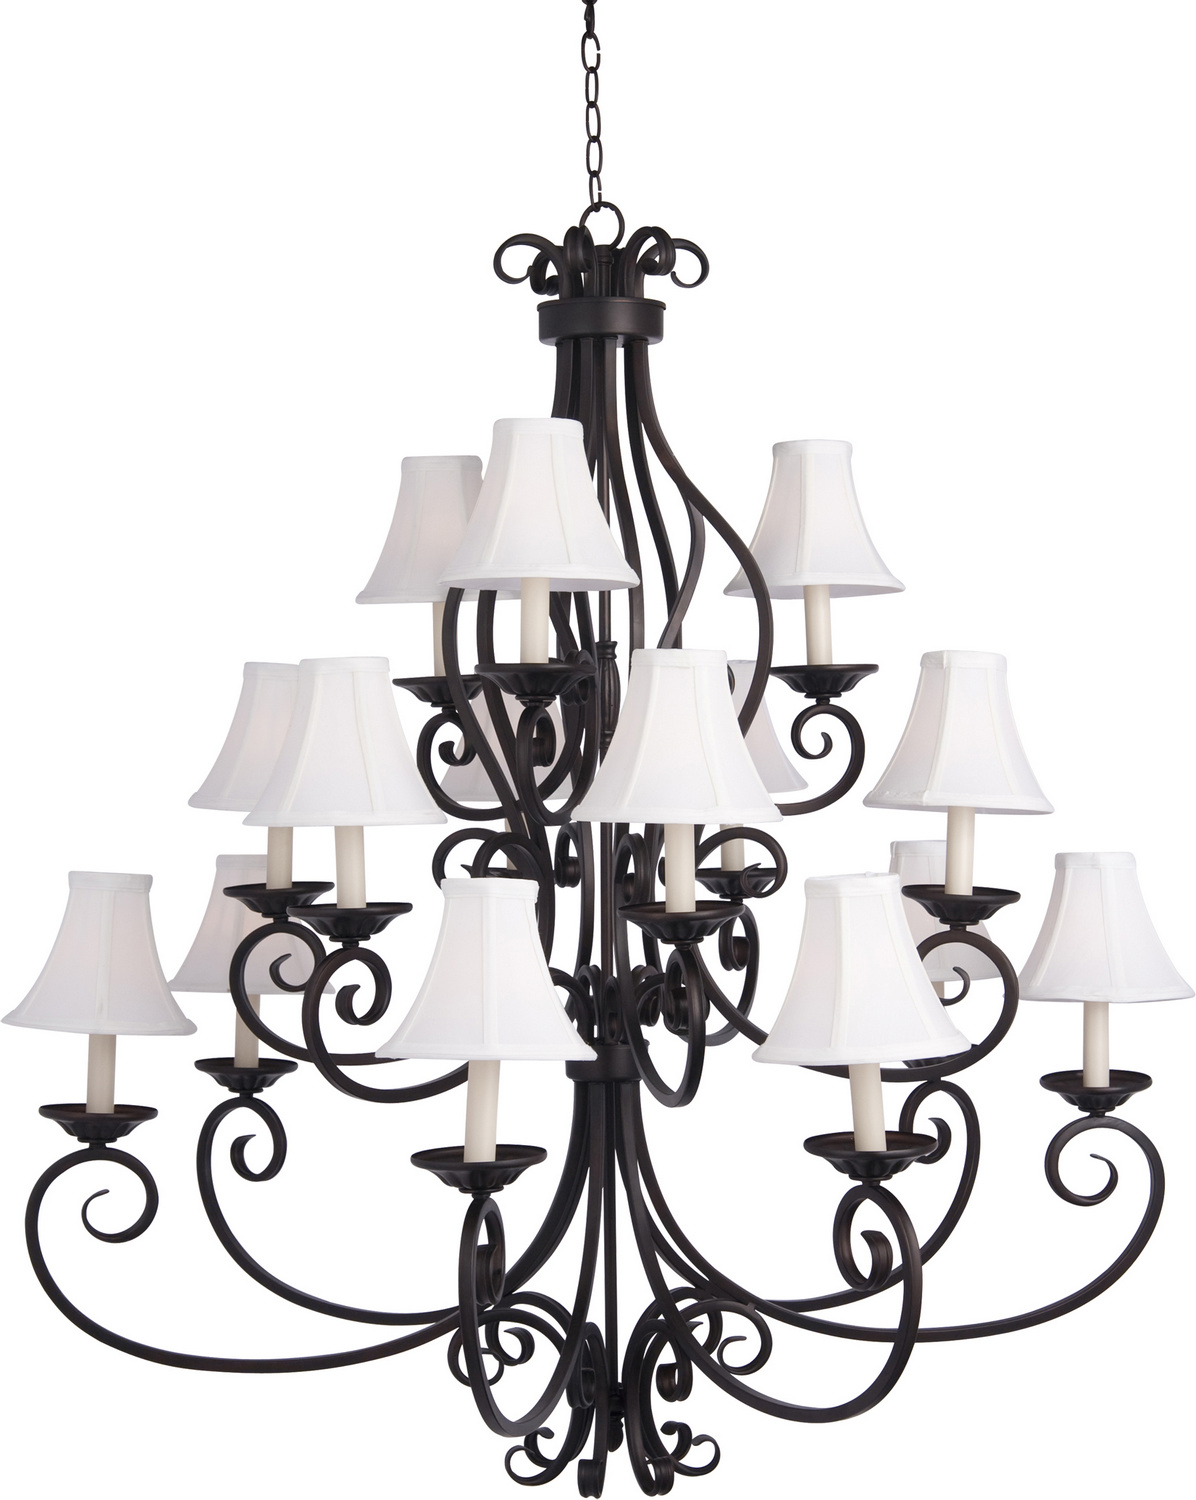 15 Light Chandelier from the Manor collection by Maxim 12219OISHD123